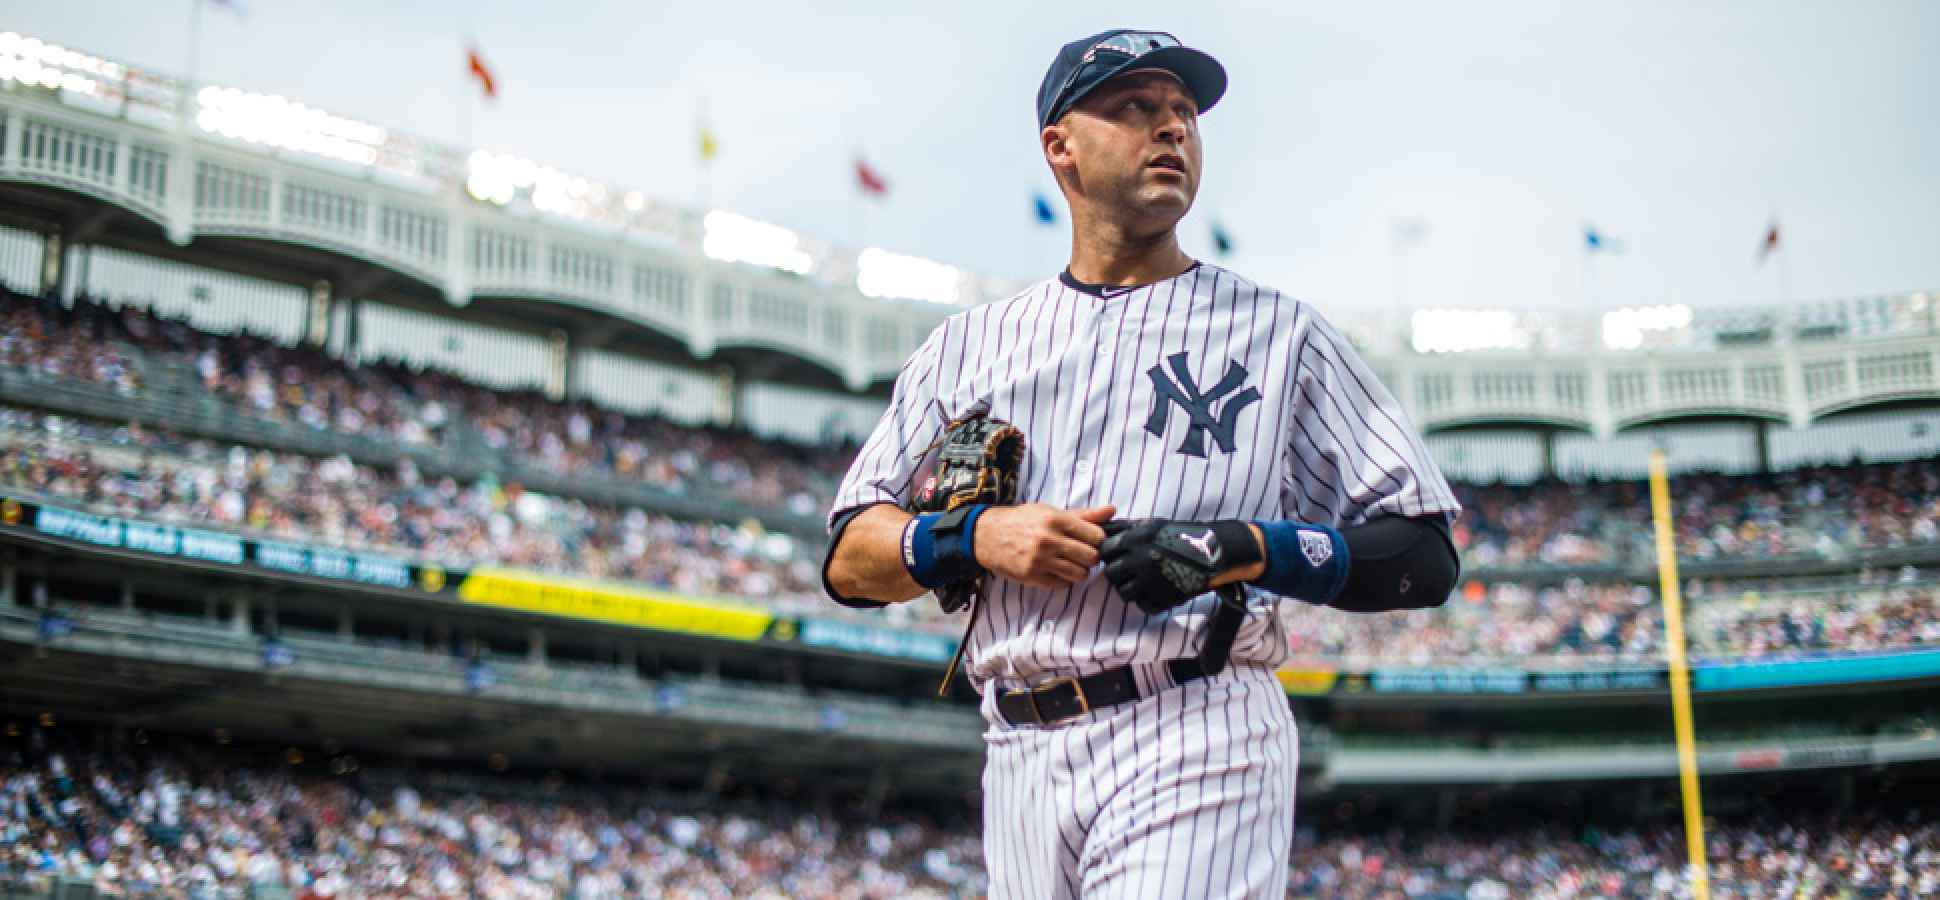 Saying Farewell to Derek Jeter: 5 Lessons on Integrity